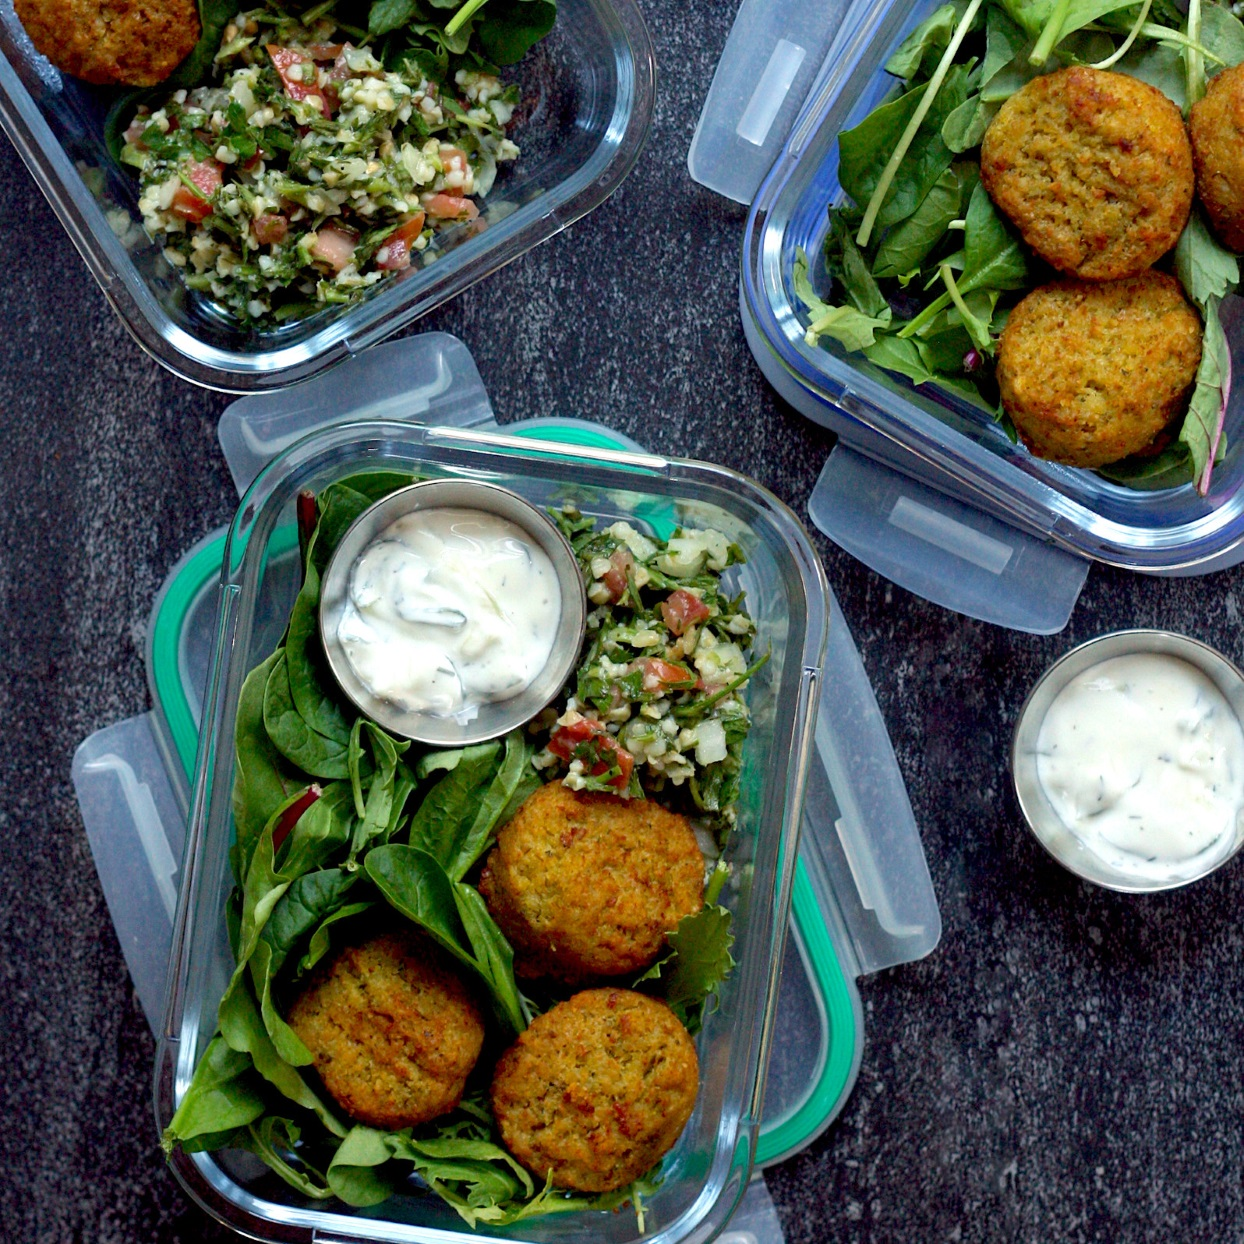 Falafel Tabbouleh Bowls with Tzatziki Trusted Brands